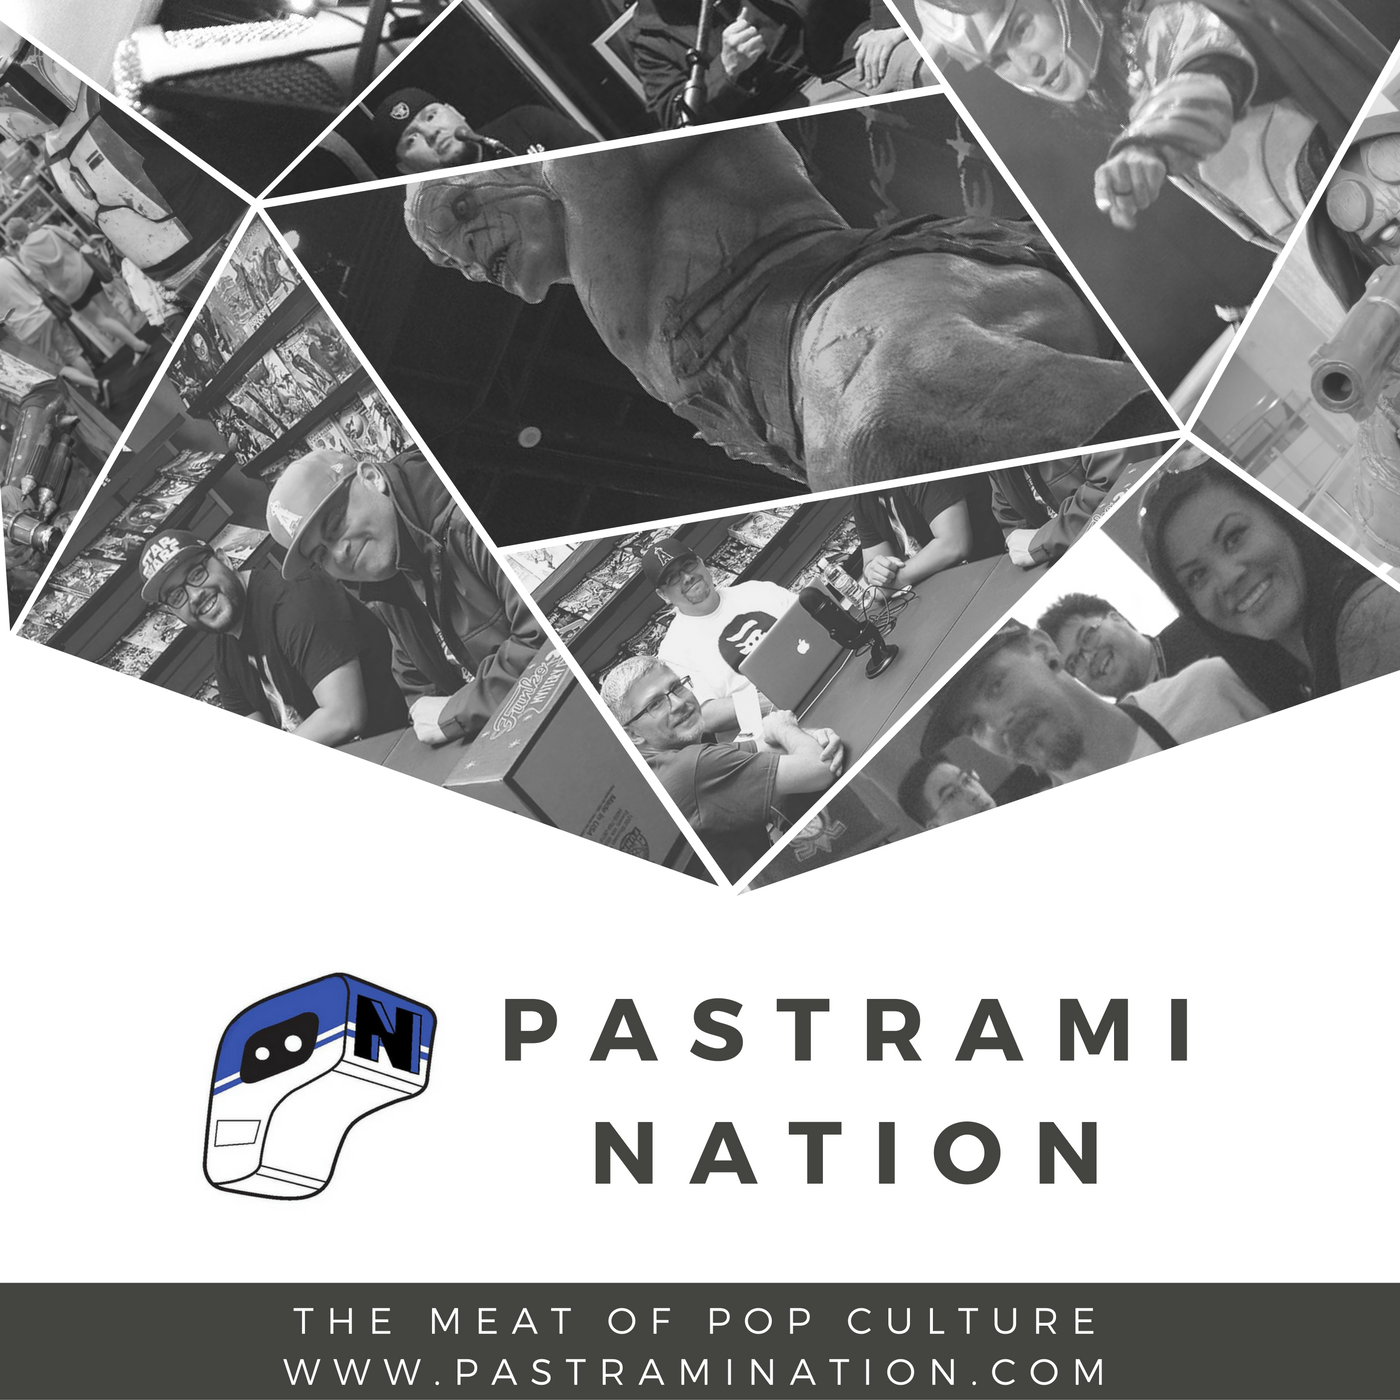 Pastrami Nation Podcast: Valiant Entertainment, Pokemon Go, Super Mario Run, Carrie Fisher and More